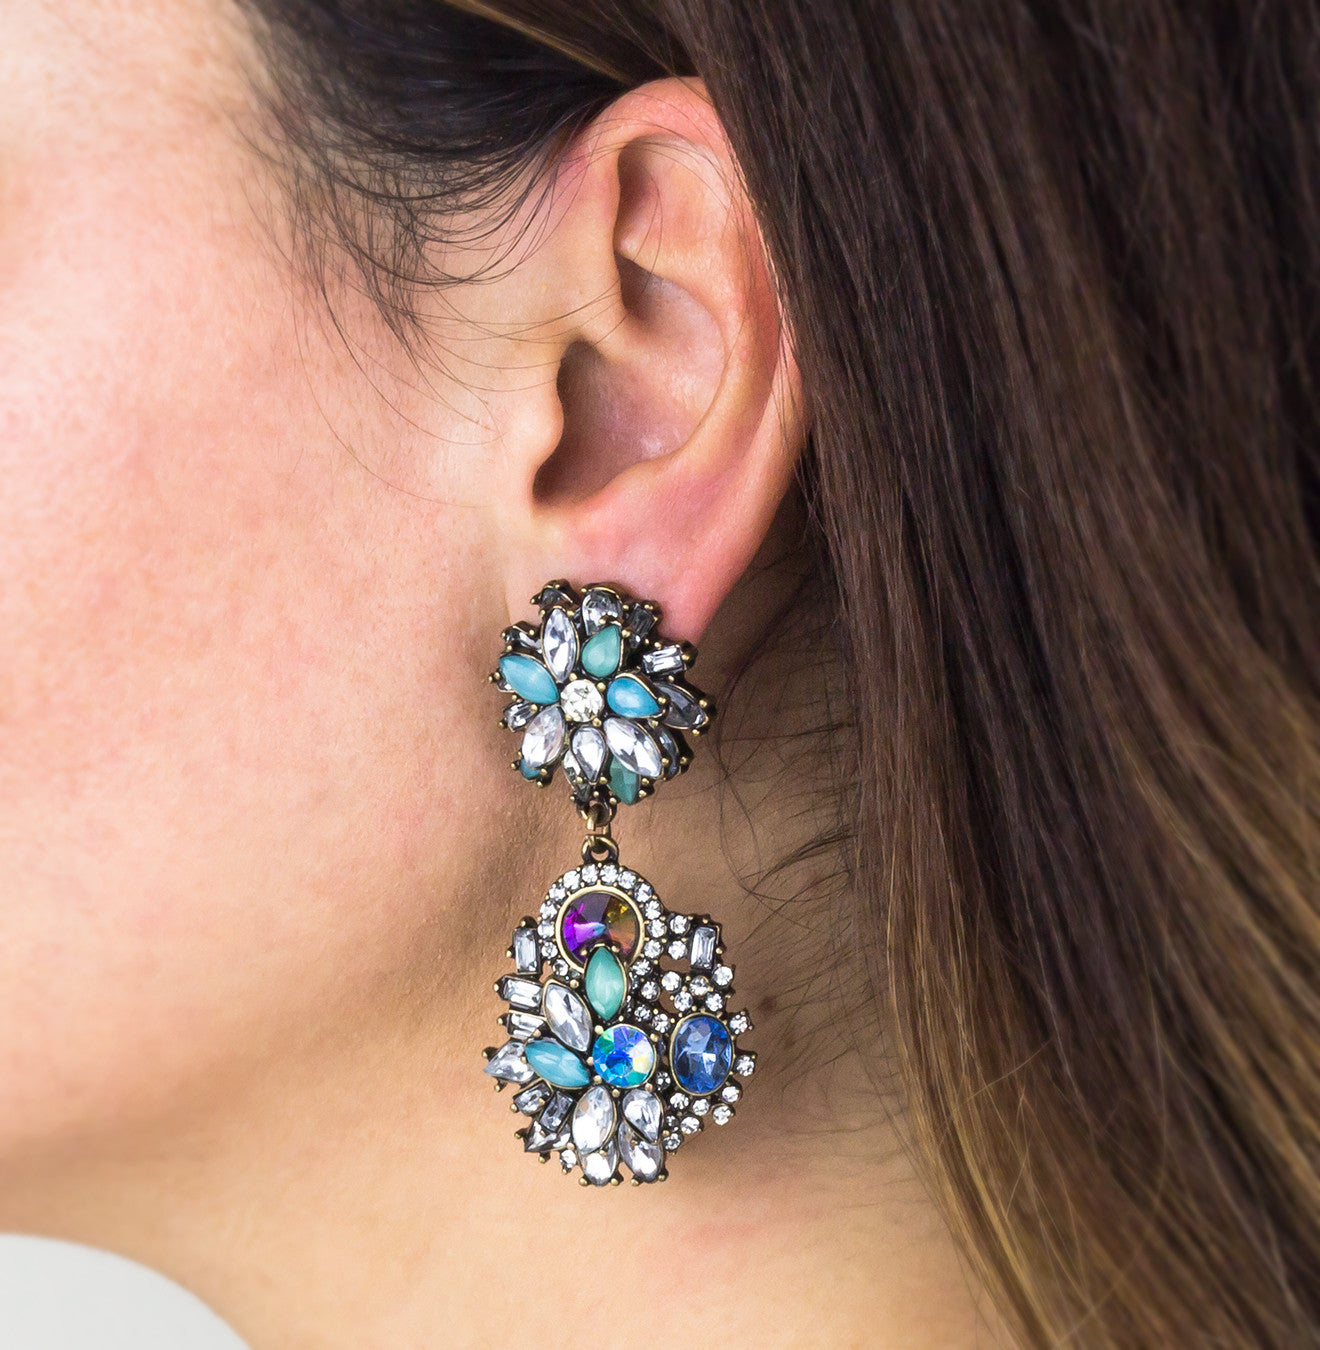 Evening Sophisticated Earring